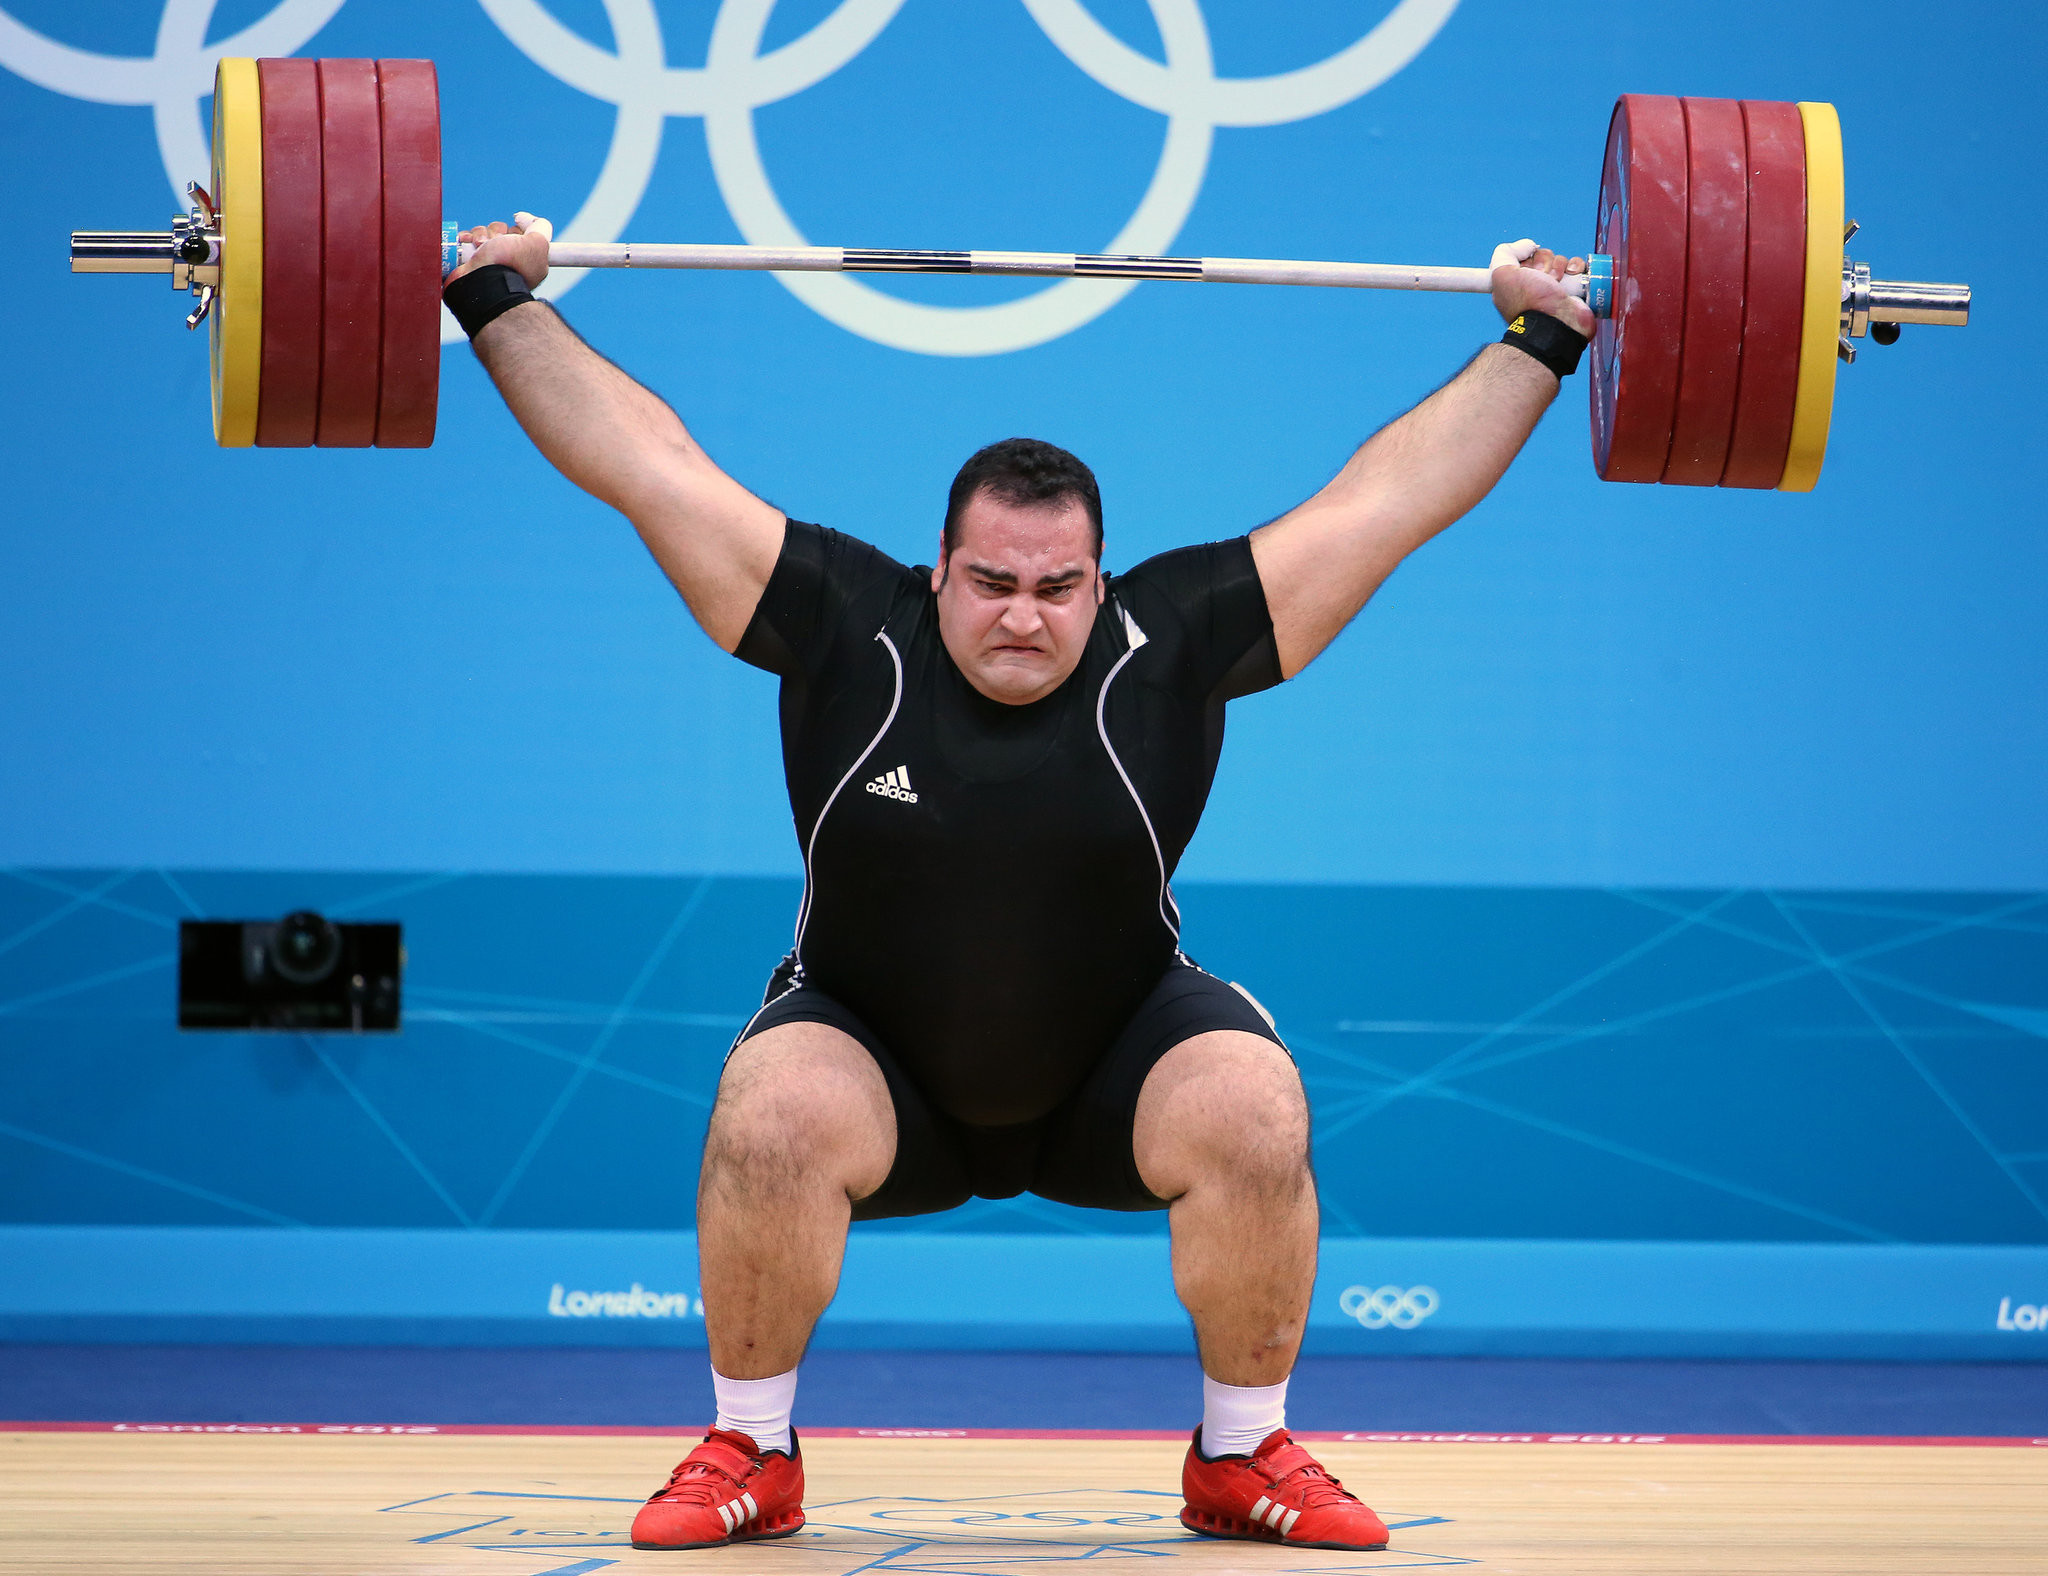 High Resolution Wallpaper | Weightlifting px